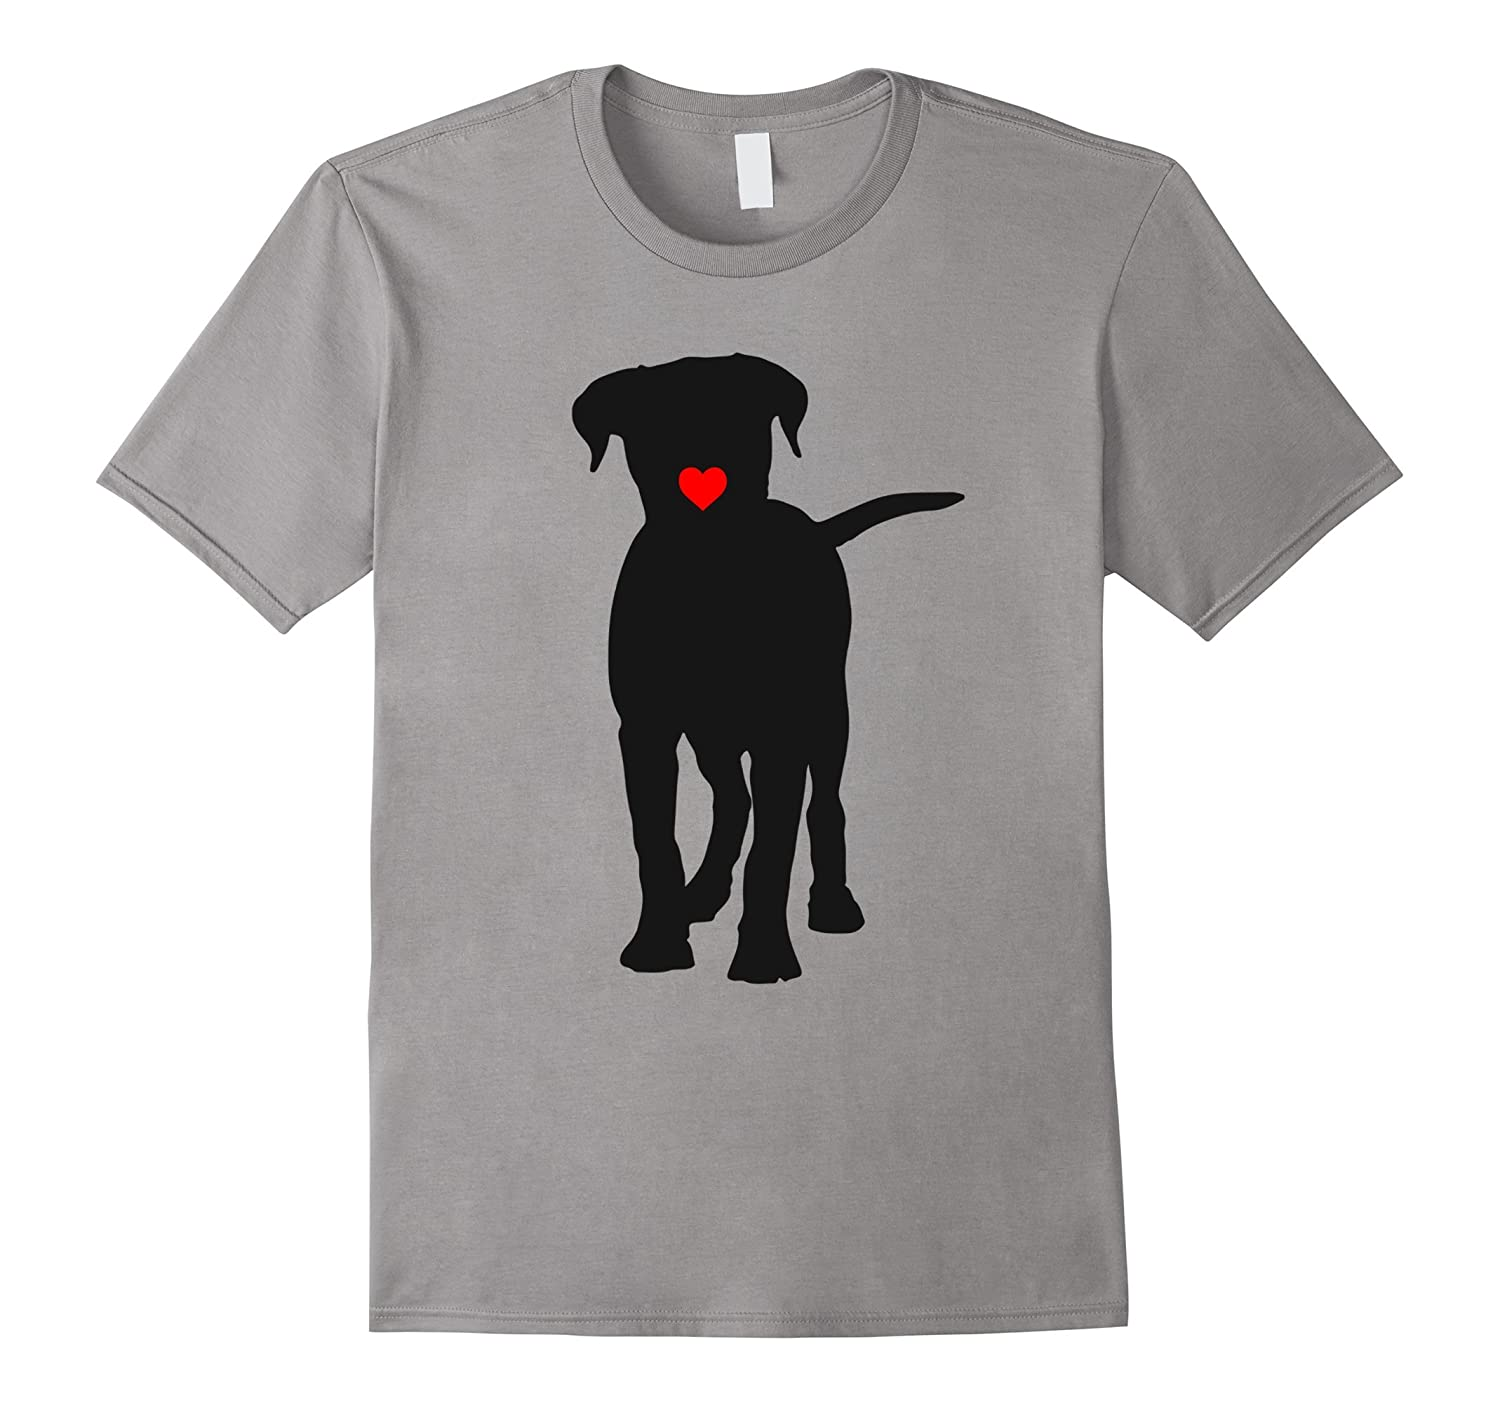 Dog heart lips kiss T shirt-TD